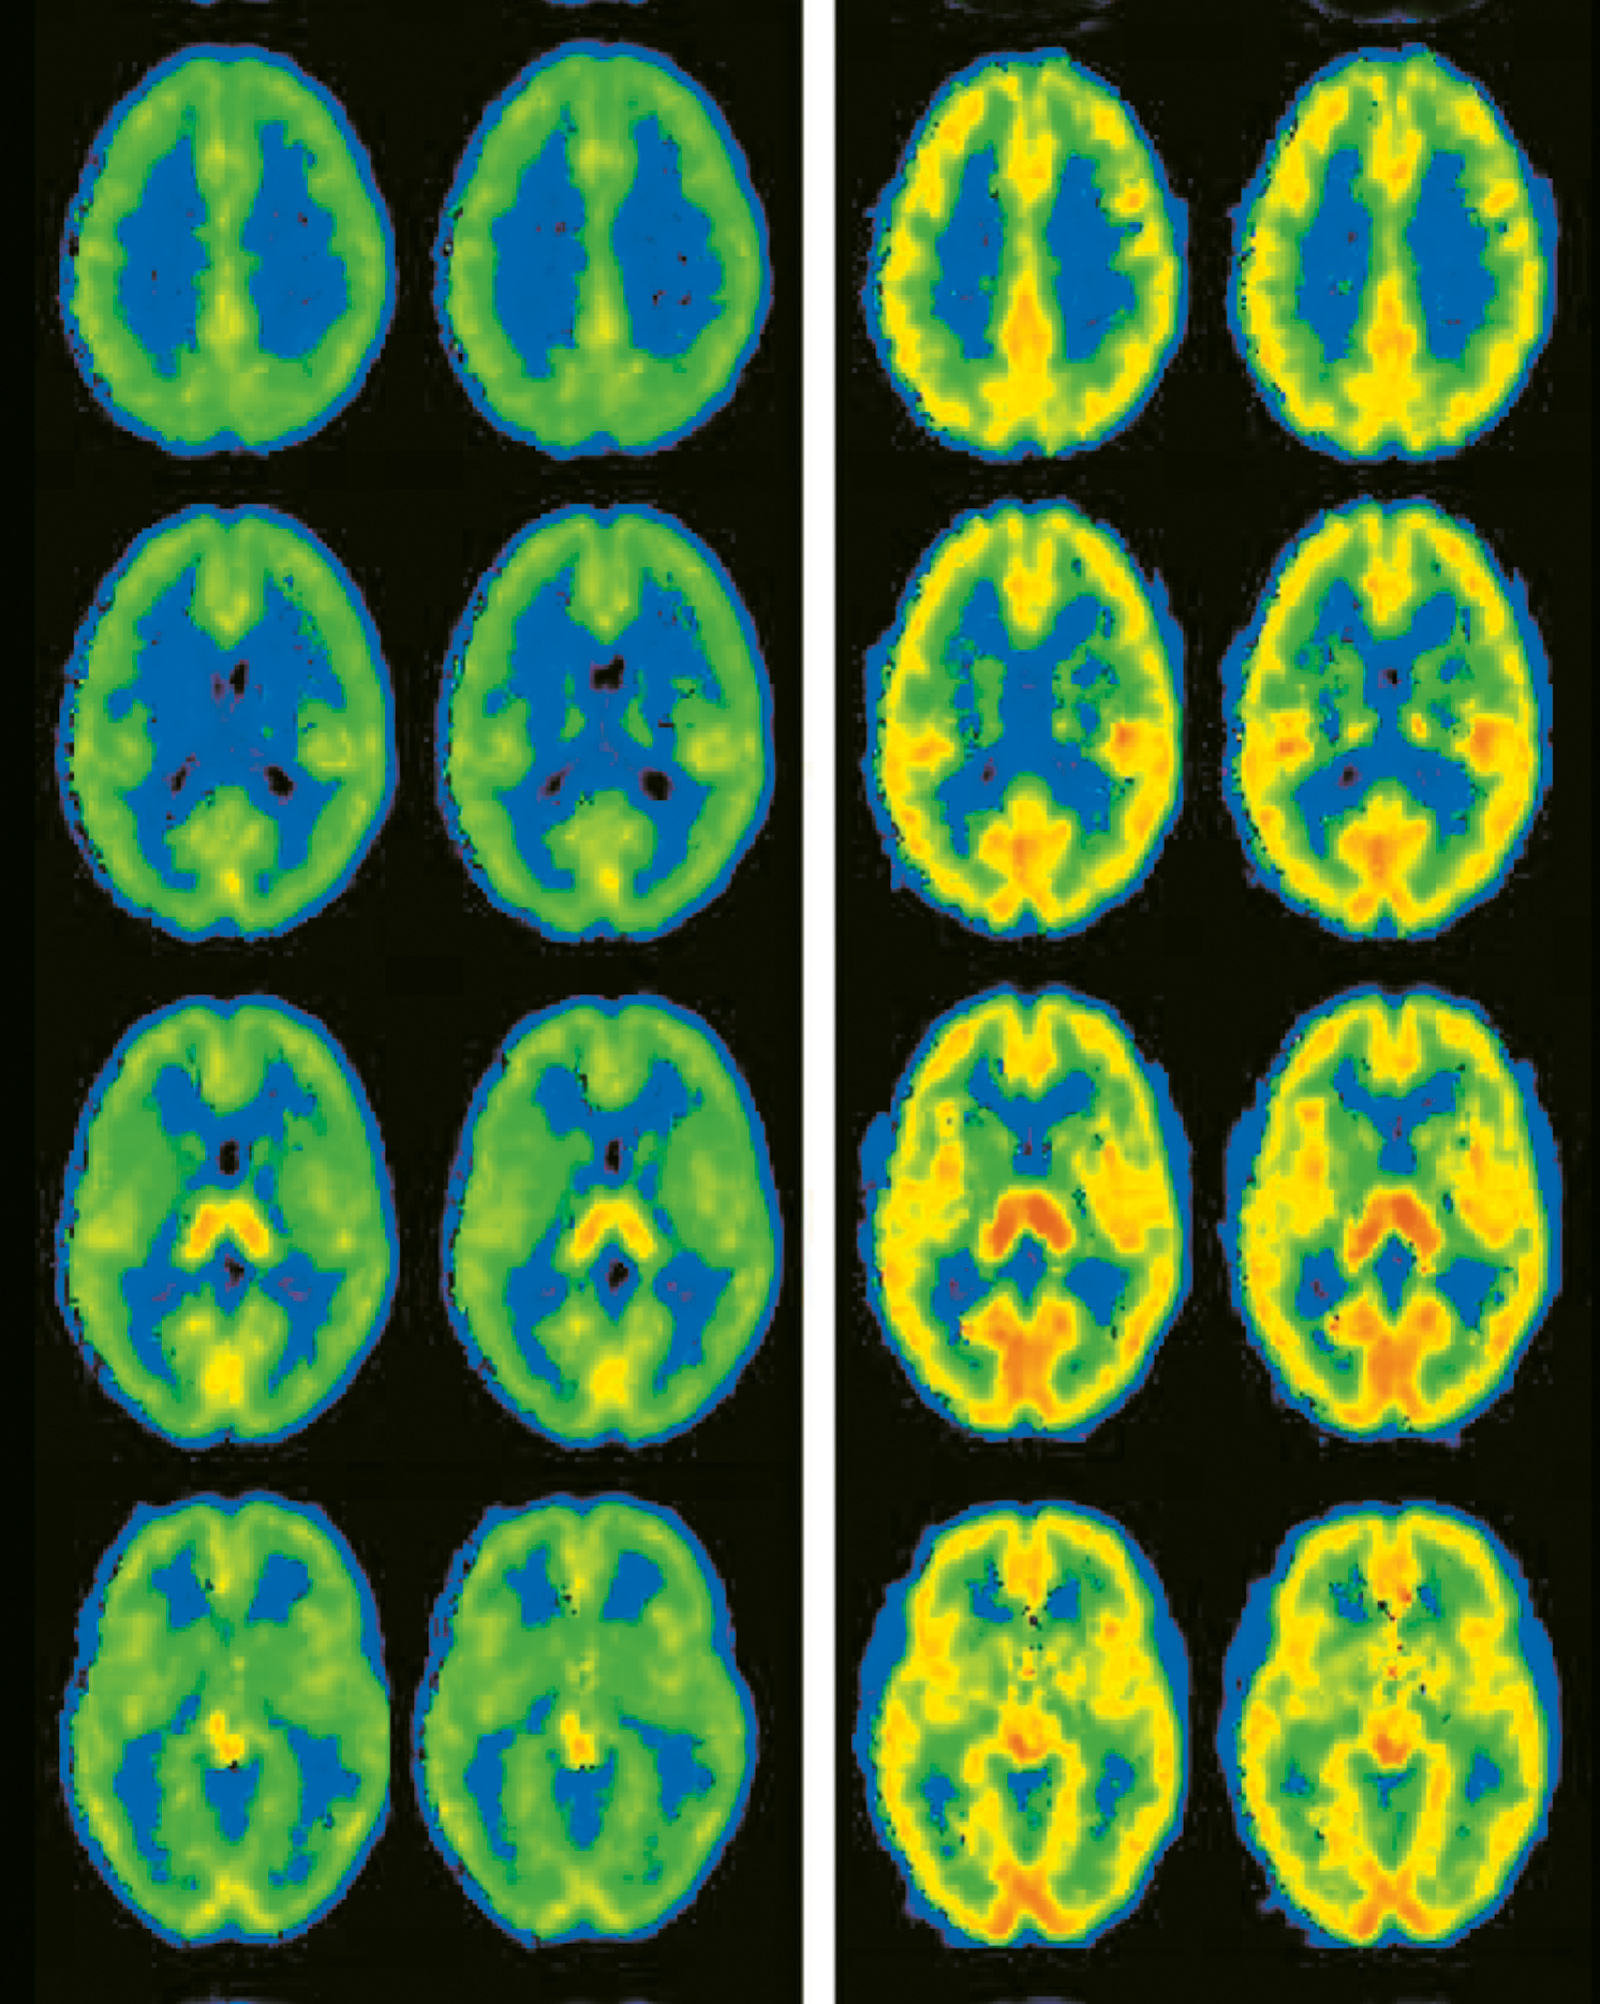 Brain activity in 'aggressive and nonaggressive participants'; from a 2008 study of trait aggression as a predictor of future violence, published in The Journal of Neuroscience